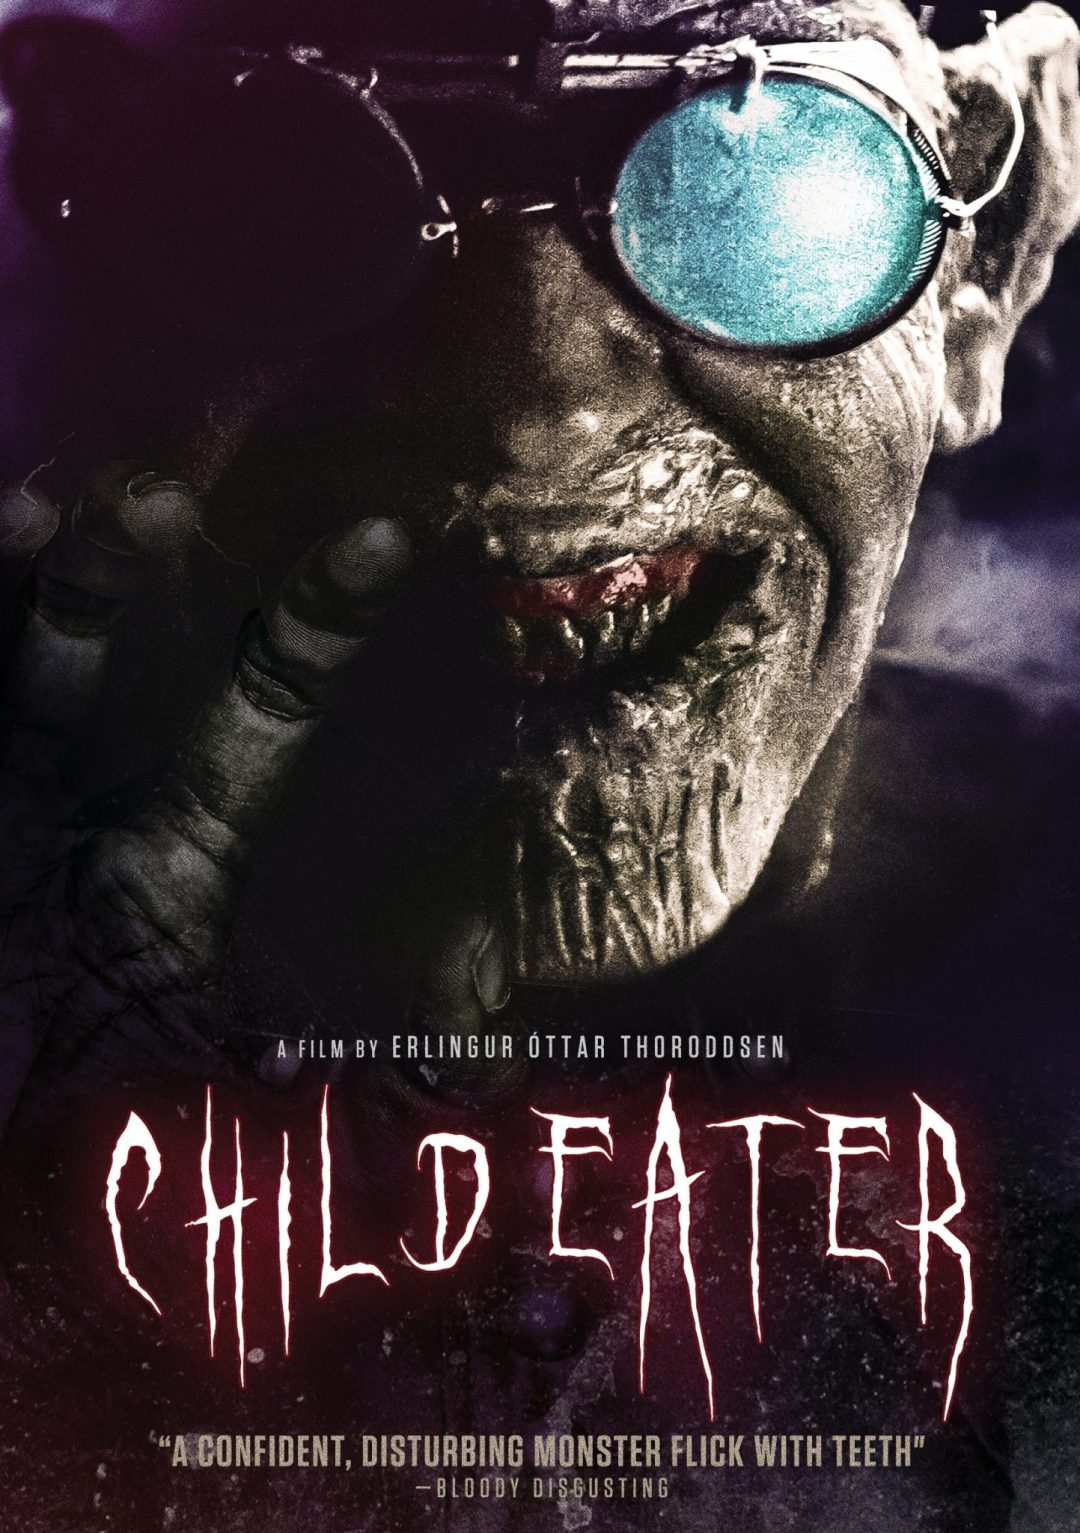 'Child Eater' Comes to Play on March 28th